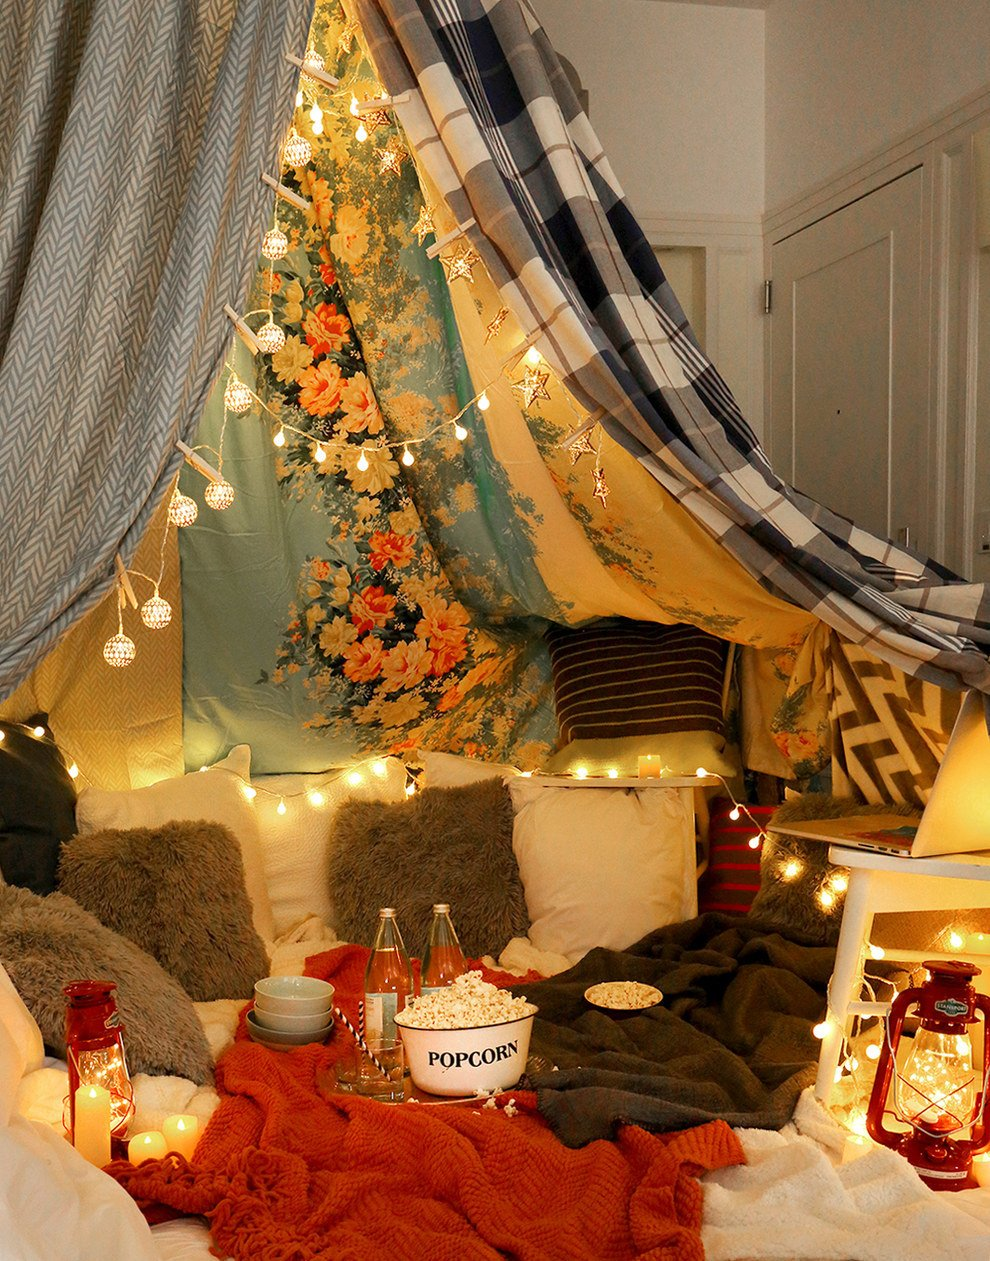 How to Build an Unforgettable Blanket Fort